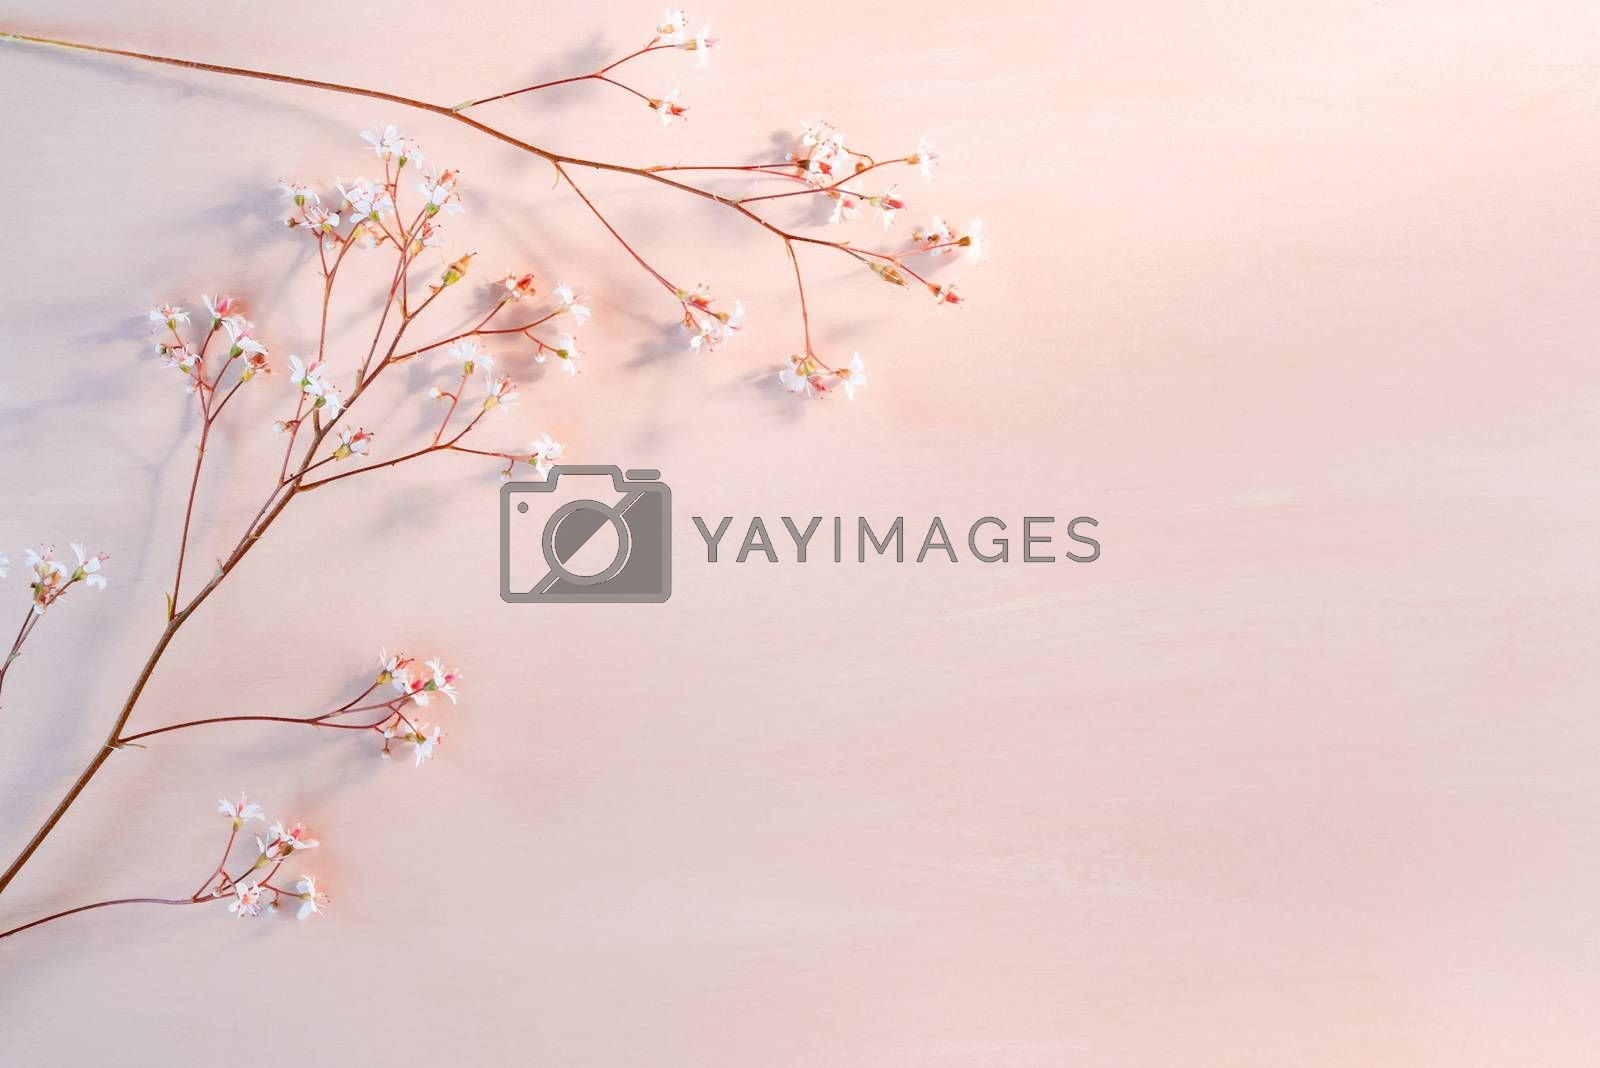 Royalty free image of Sprigs with small white flowers on a wooden coral background with space for text - beautiful floral background by galsand